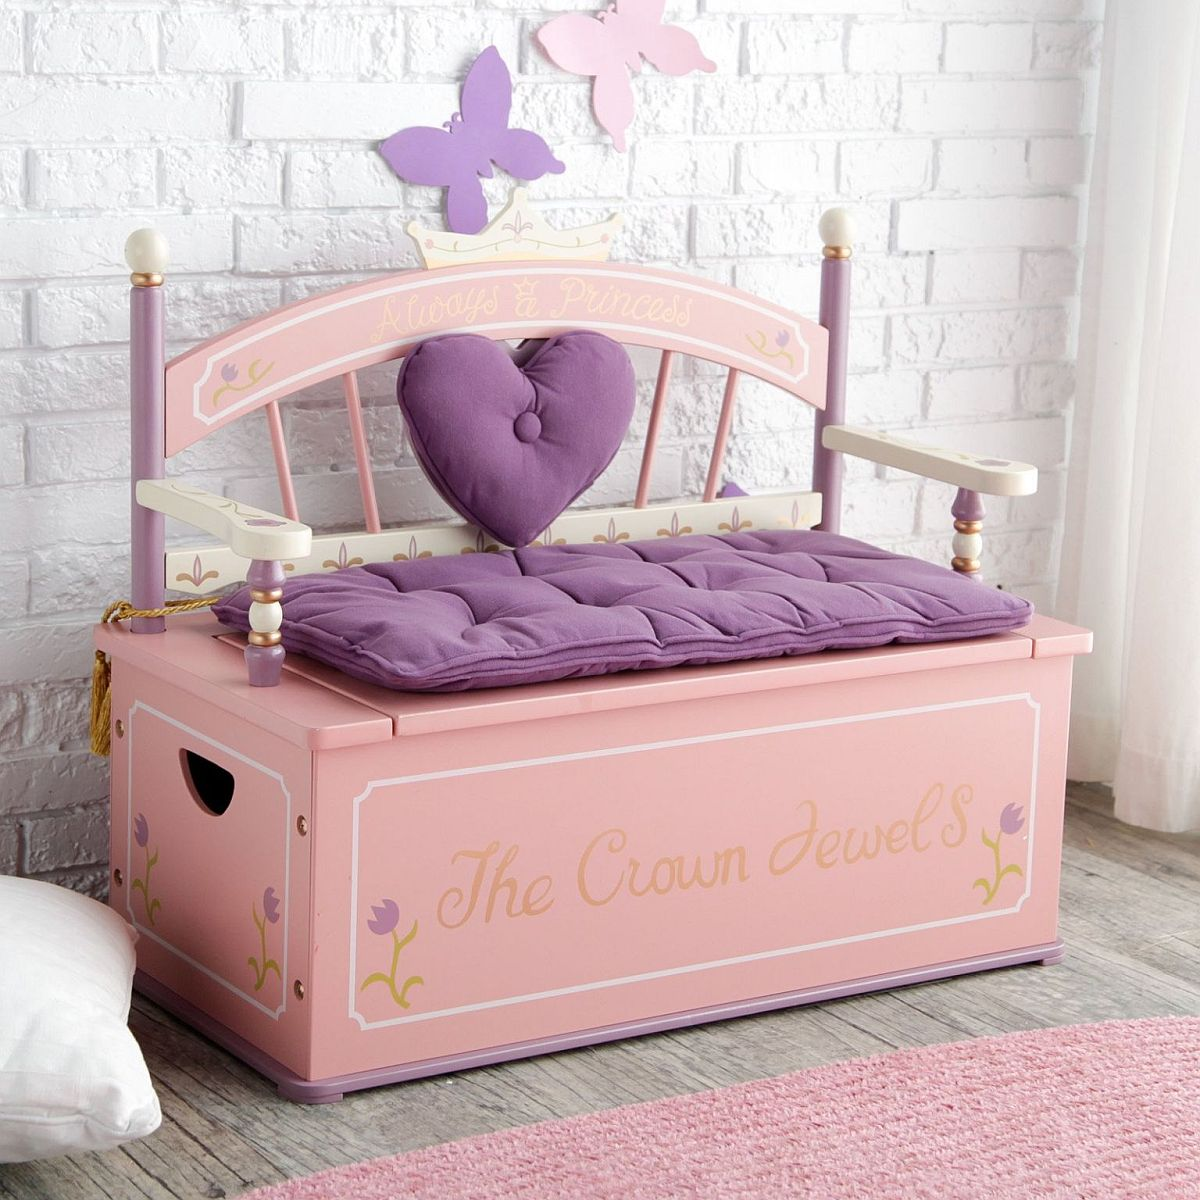 Luxurious and exquisite bench with storage underneath is perfect for the modern girls' room